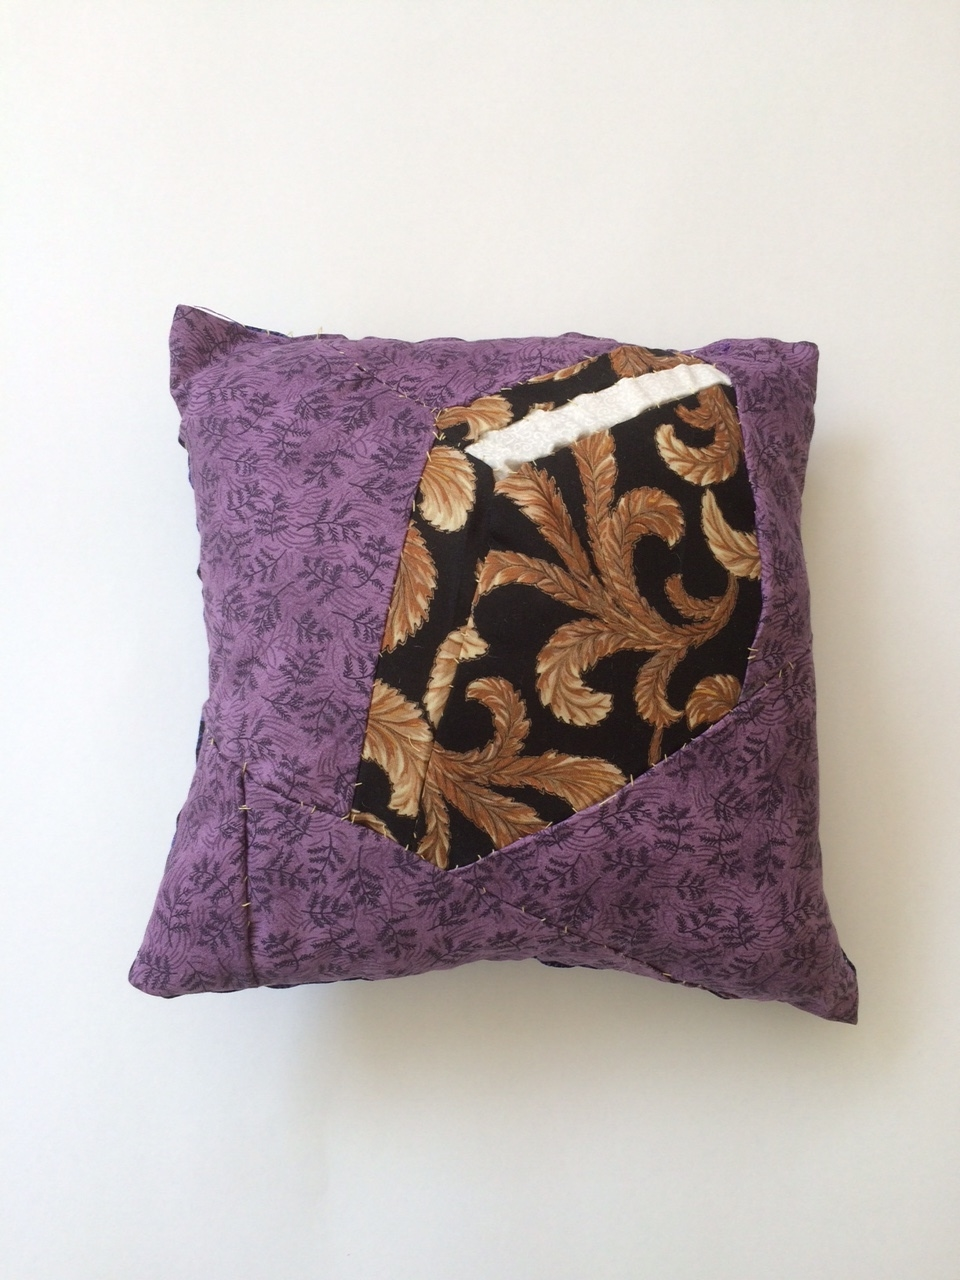 This pillow depicts a closed book seen on an angle.